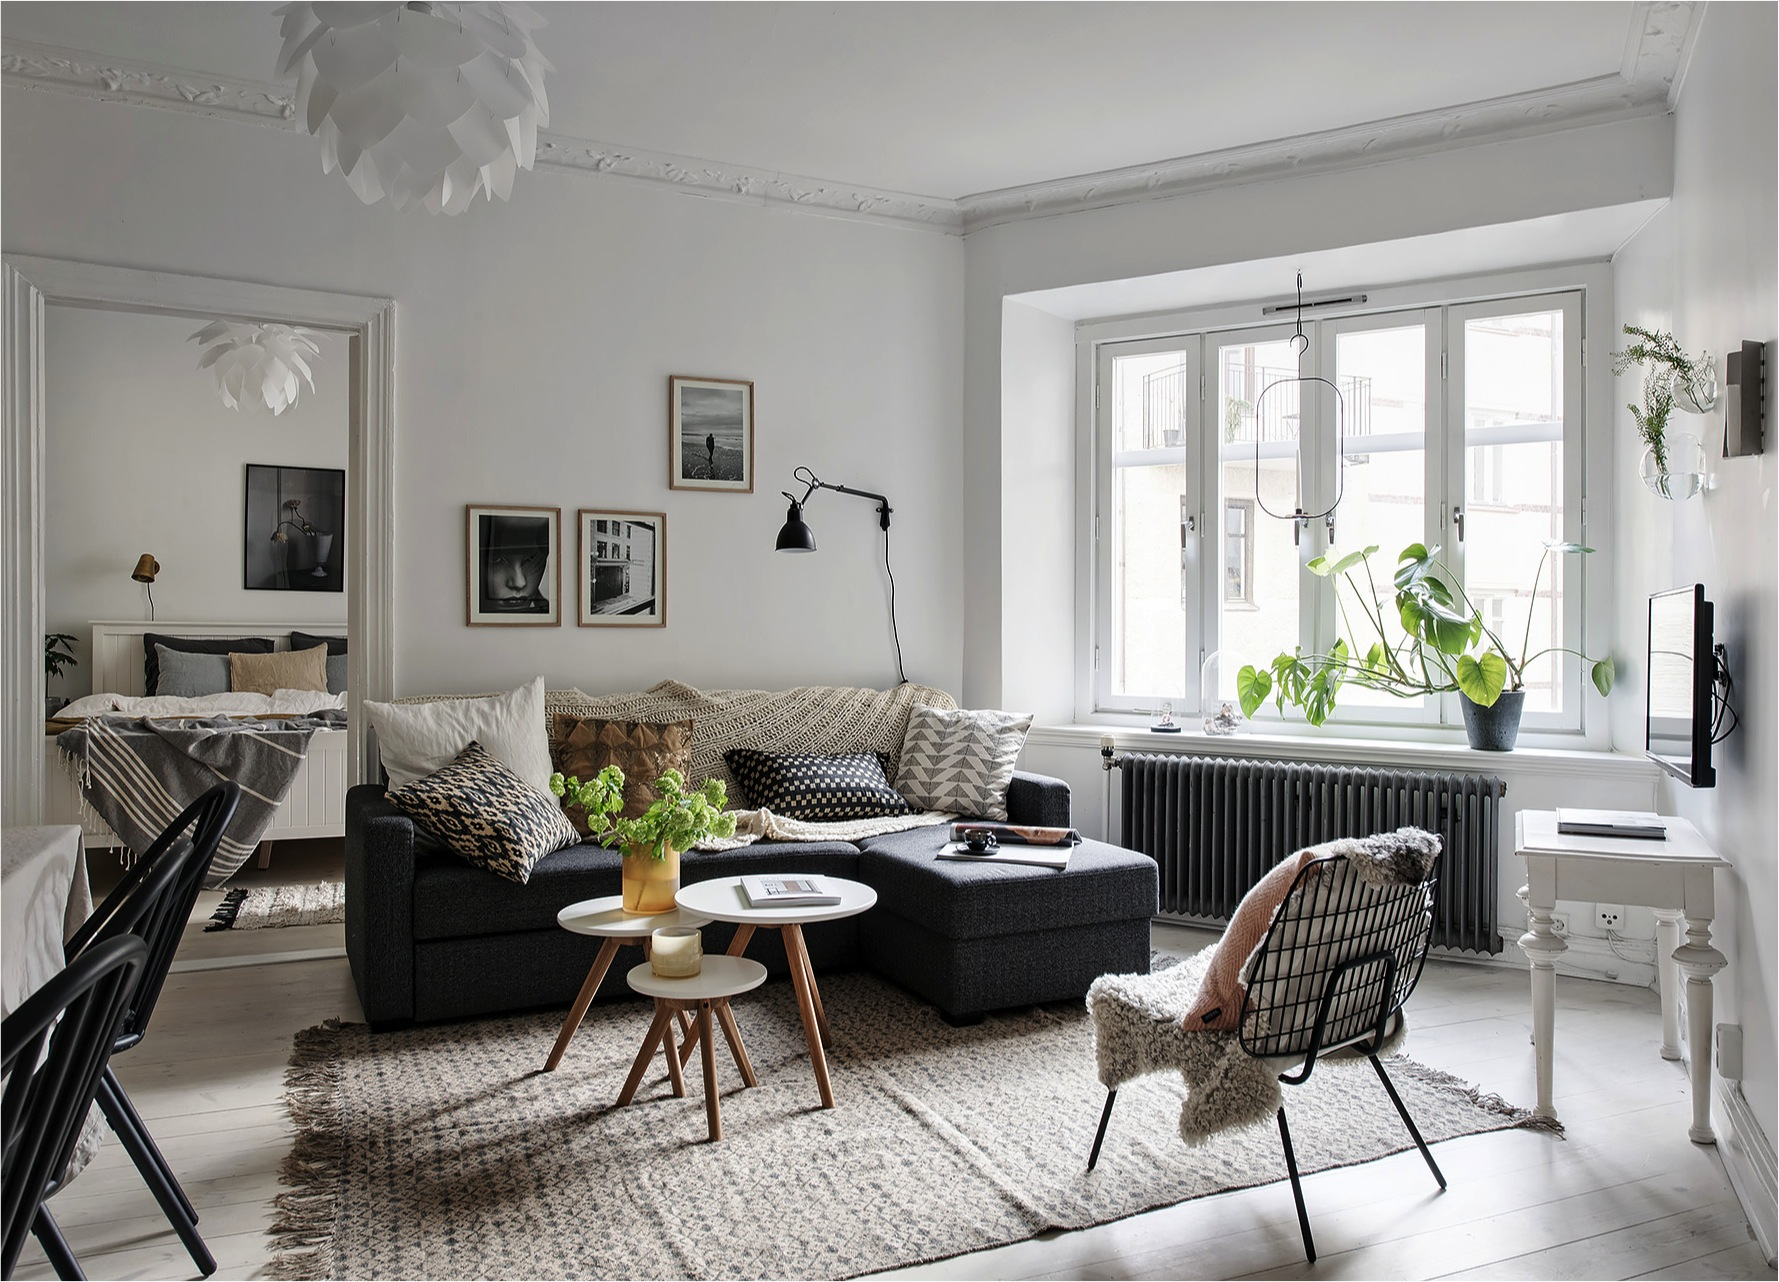 8 clever small living room ideas (with Scandi style) - DIY ... on Small Living Room Decor Ideas  id=55895